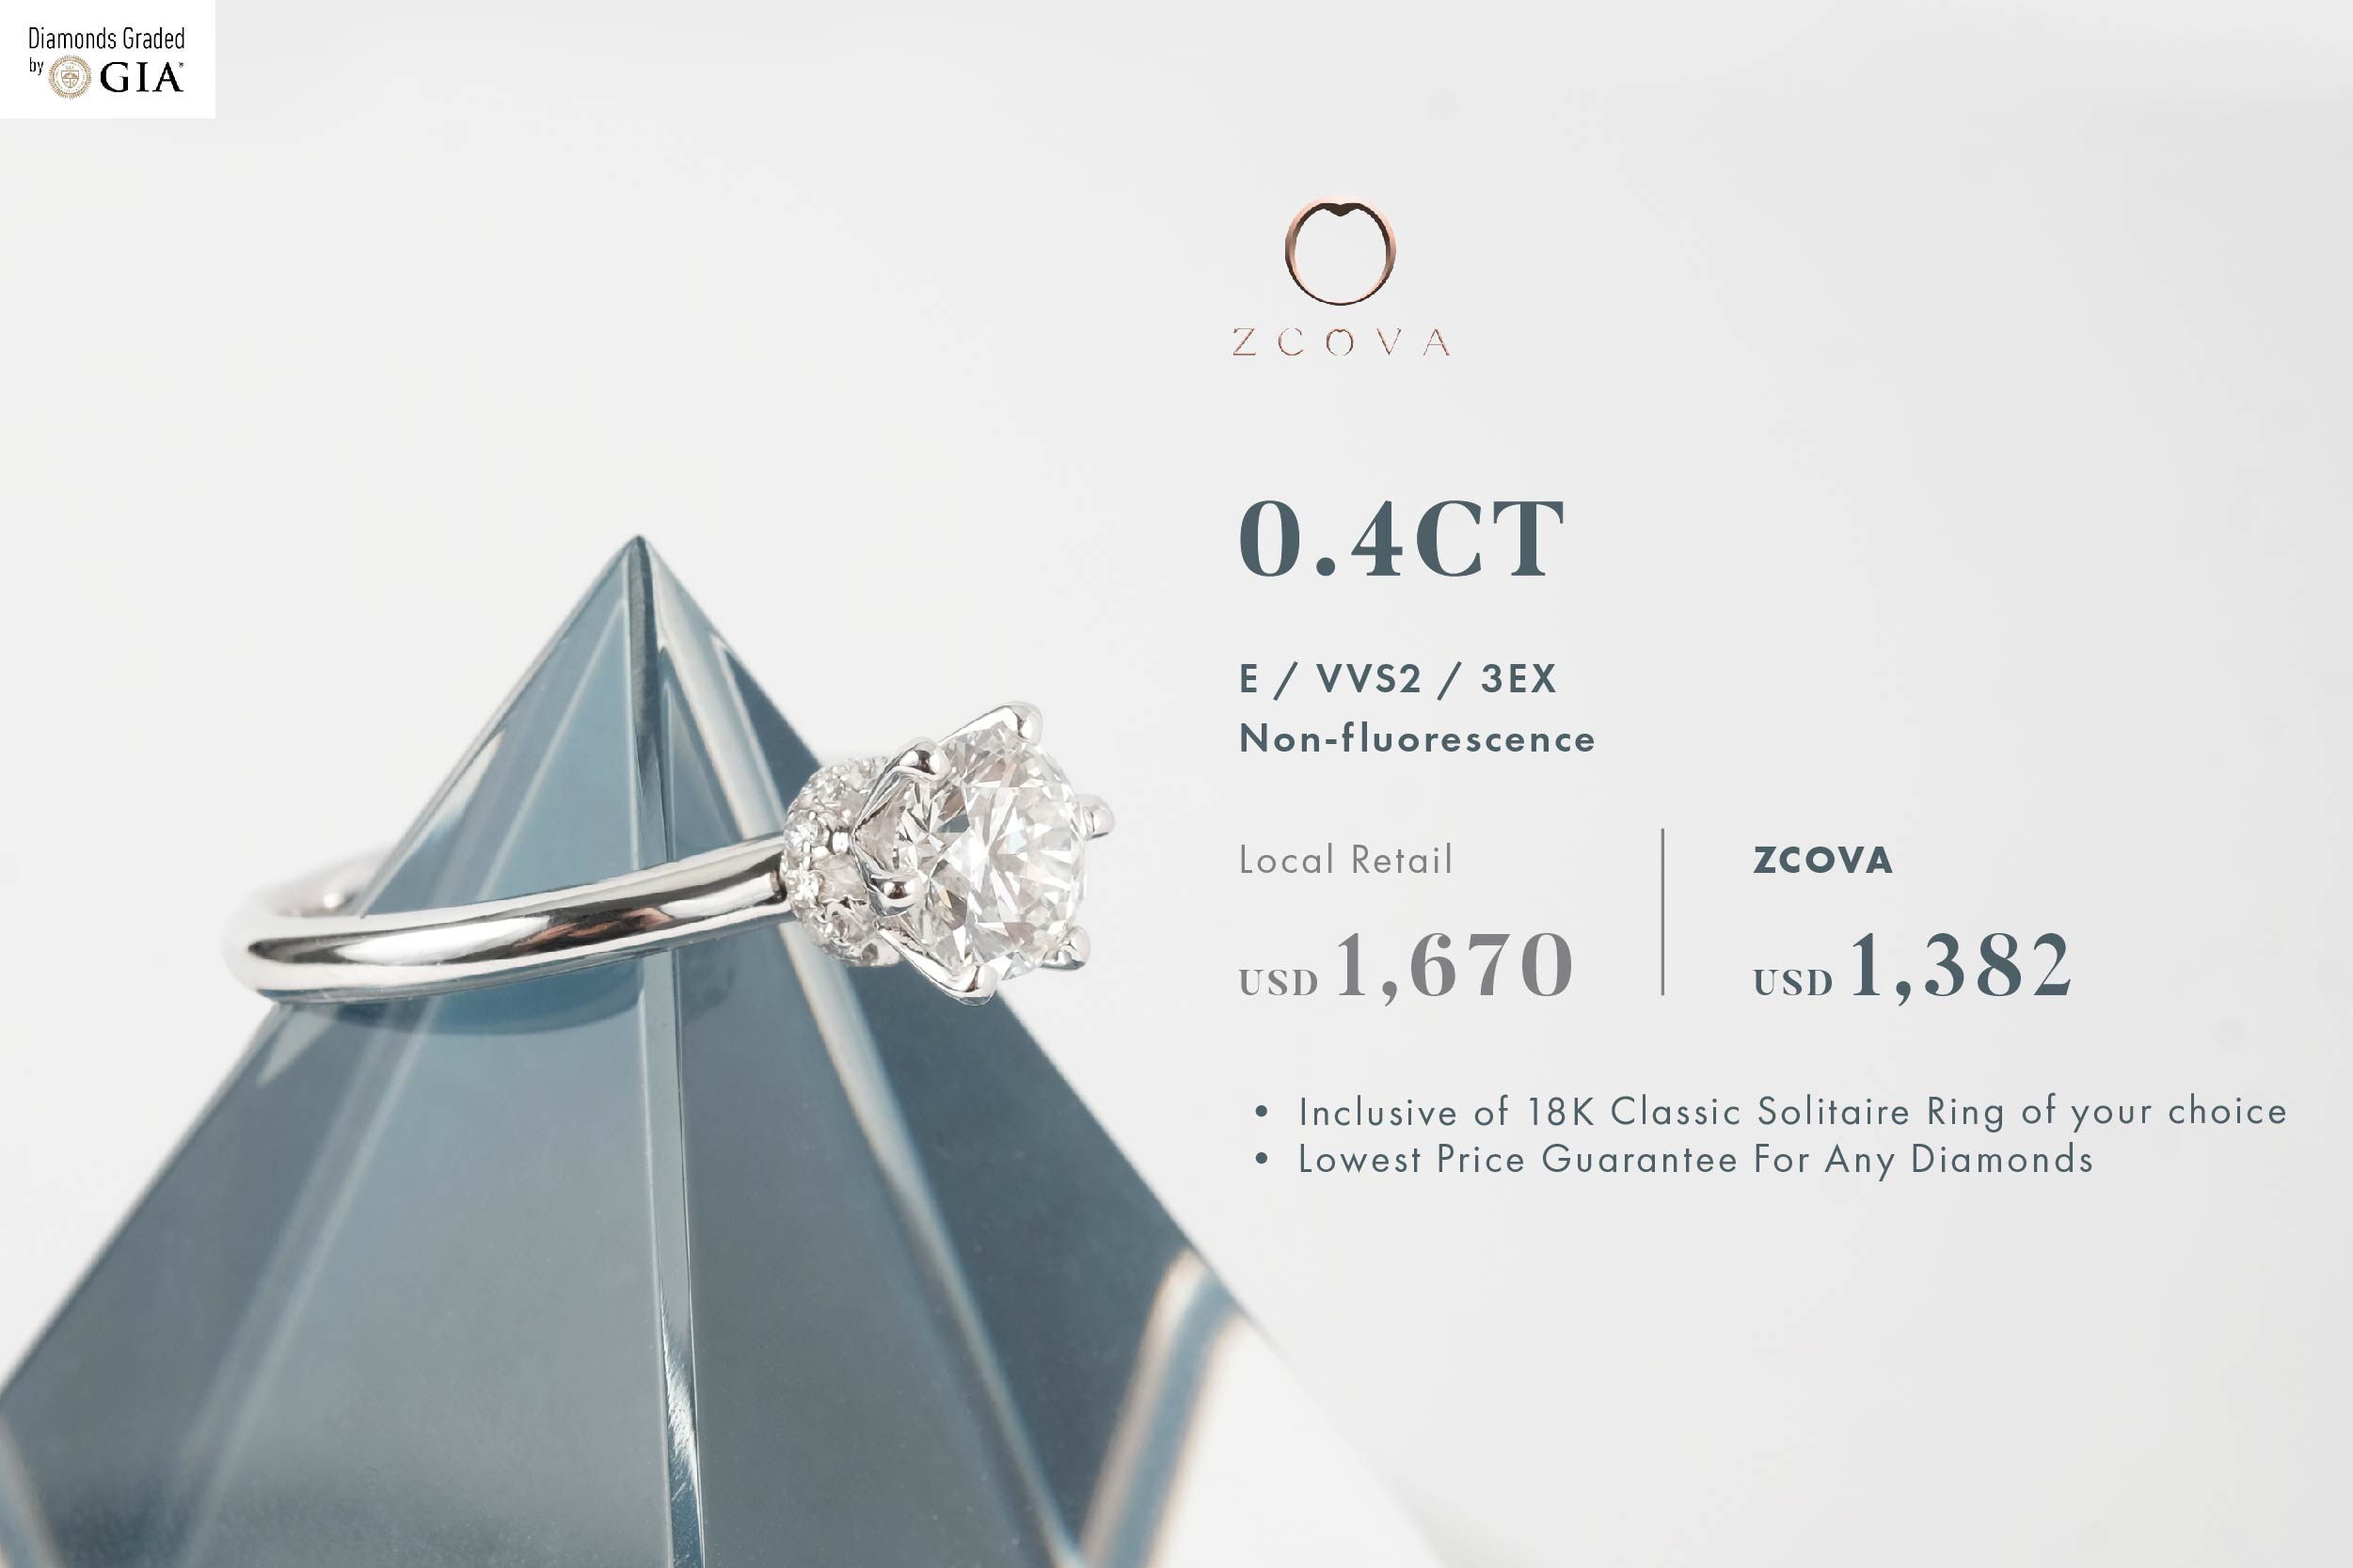 ZCOVA 0.4ct Engagement Ring Promotion